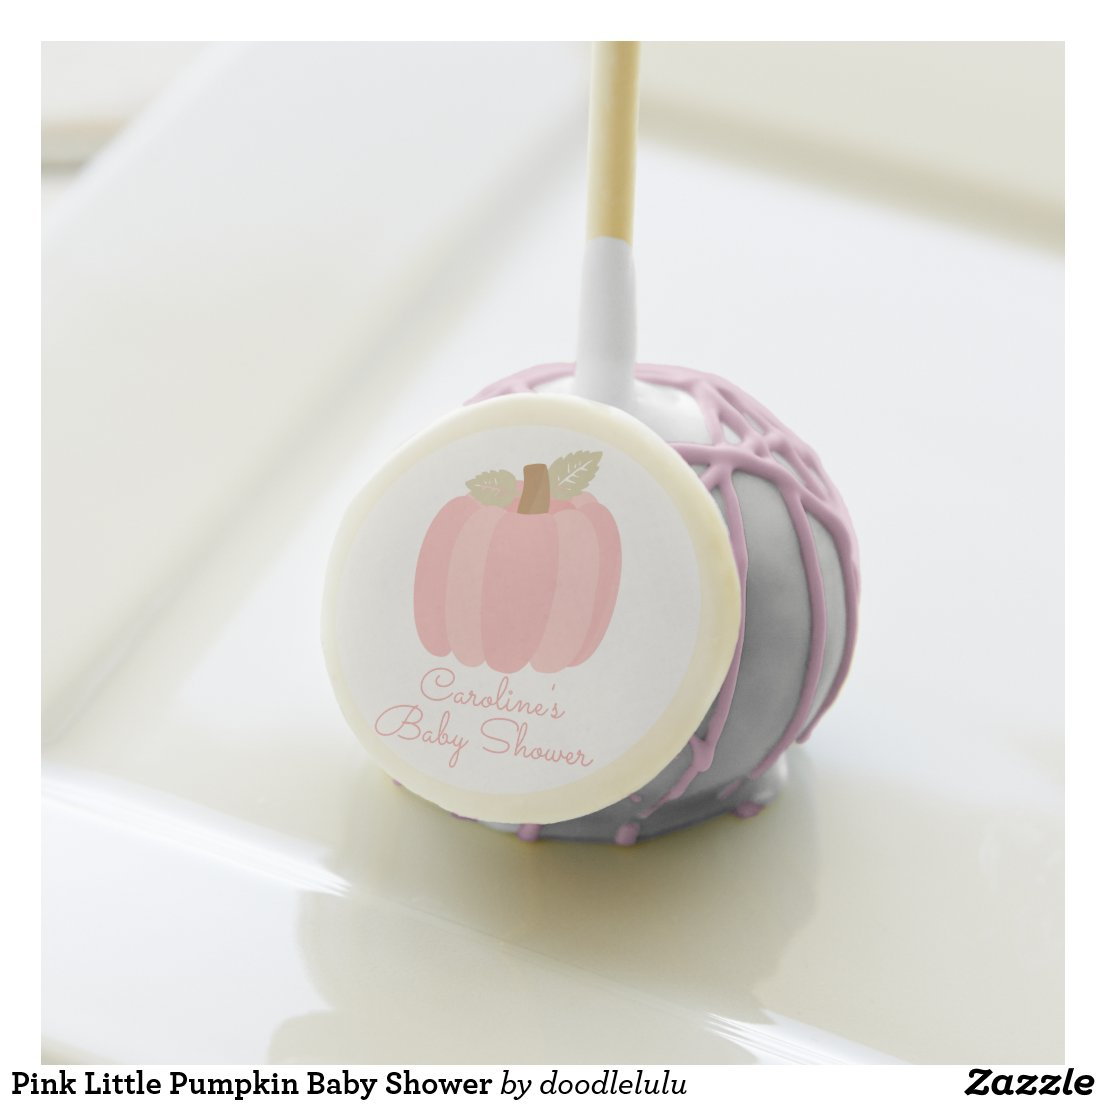 Pink Little Pumpkin Baby Shower Cake Pops